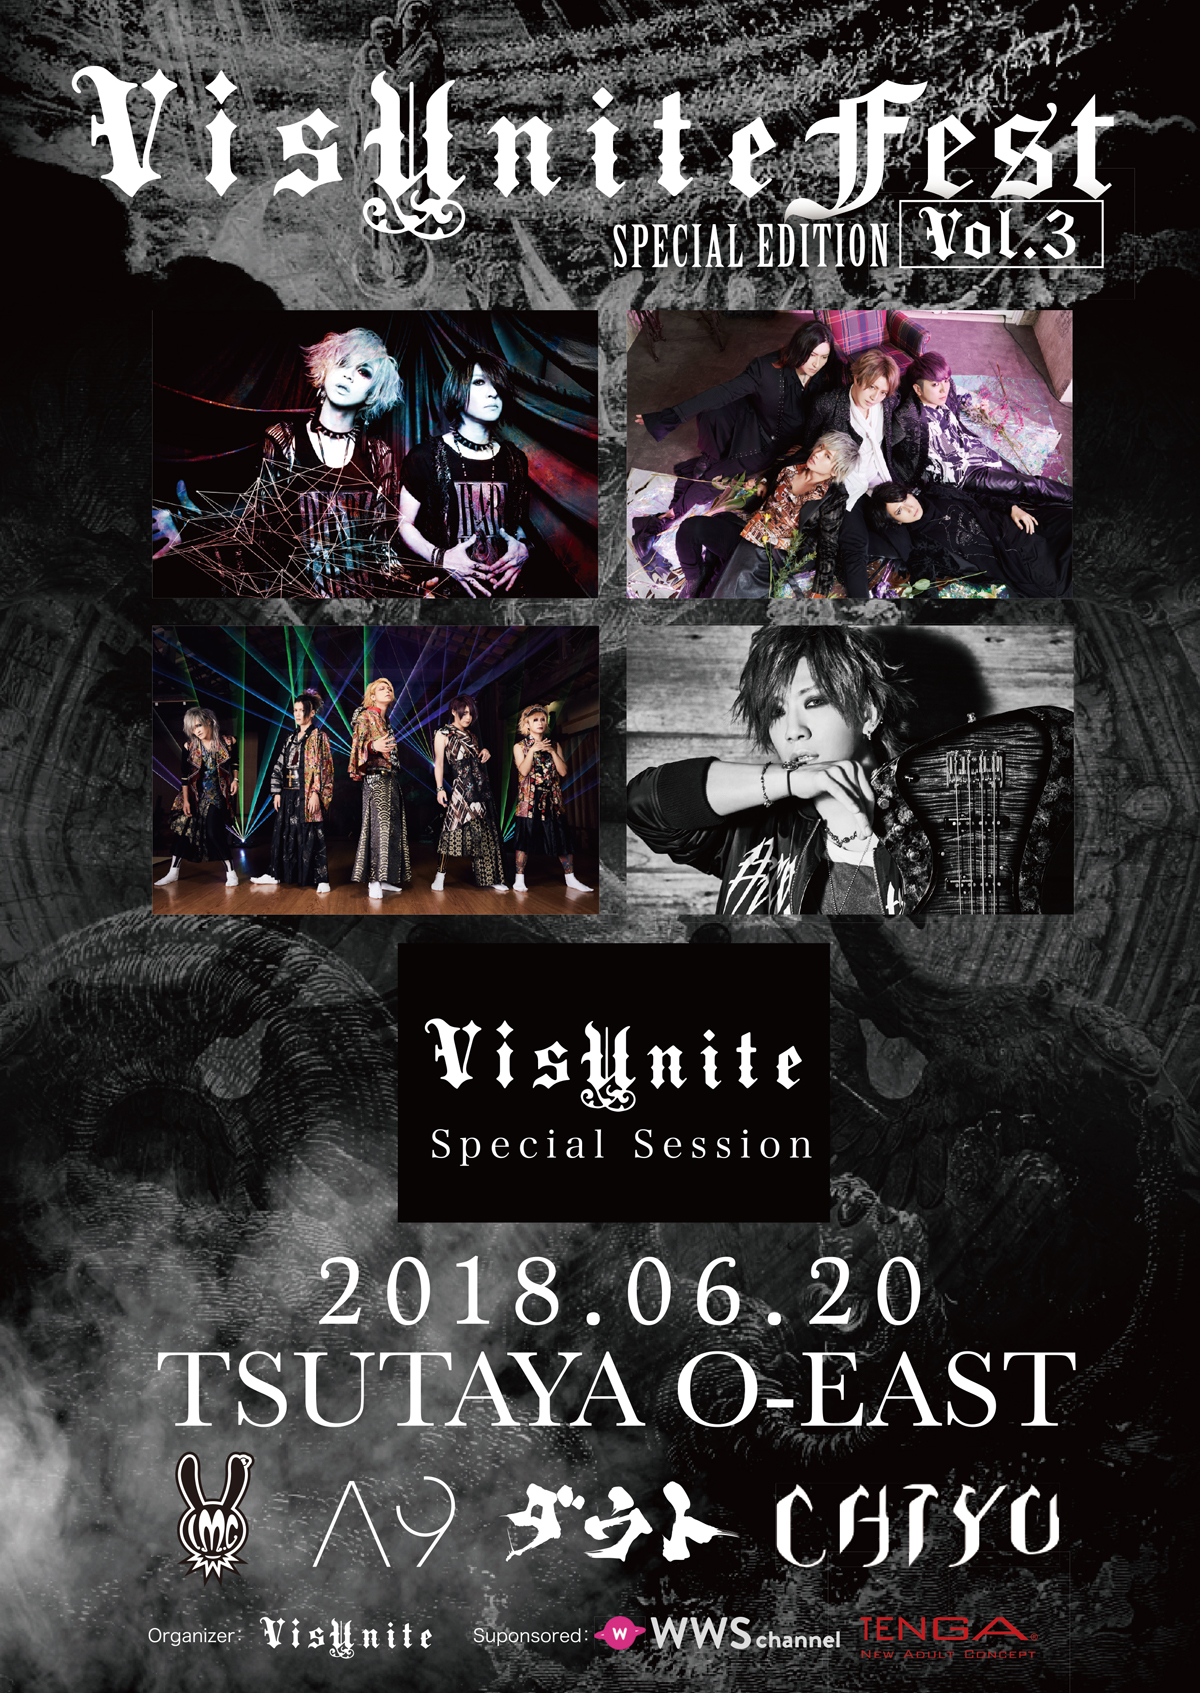 VisUnite PRESENTS「VisUnite Fest Special Edition Vol.3」